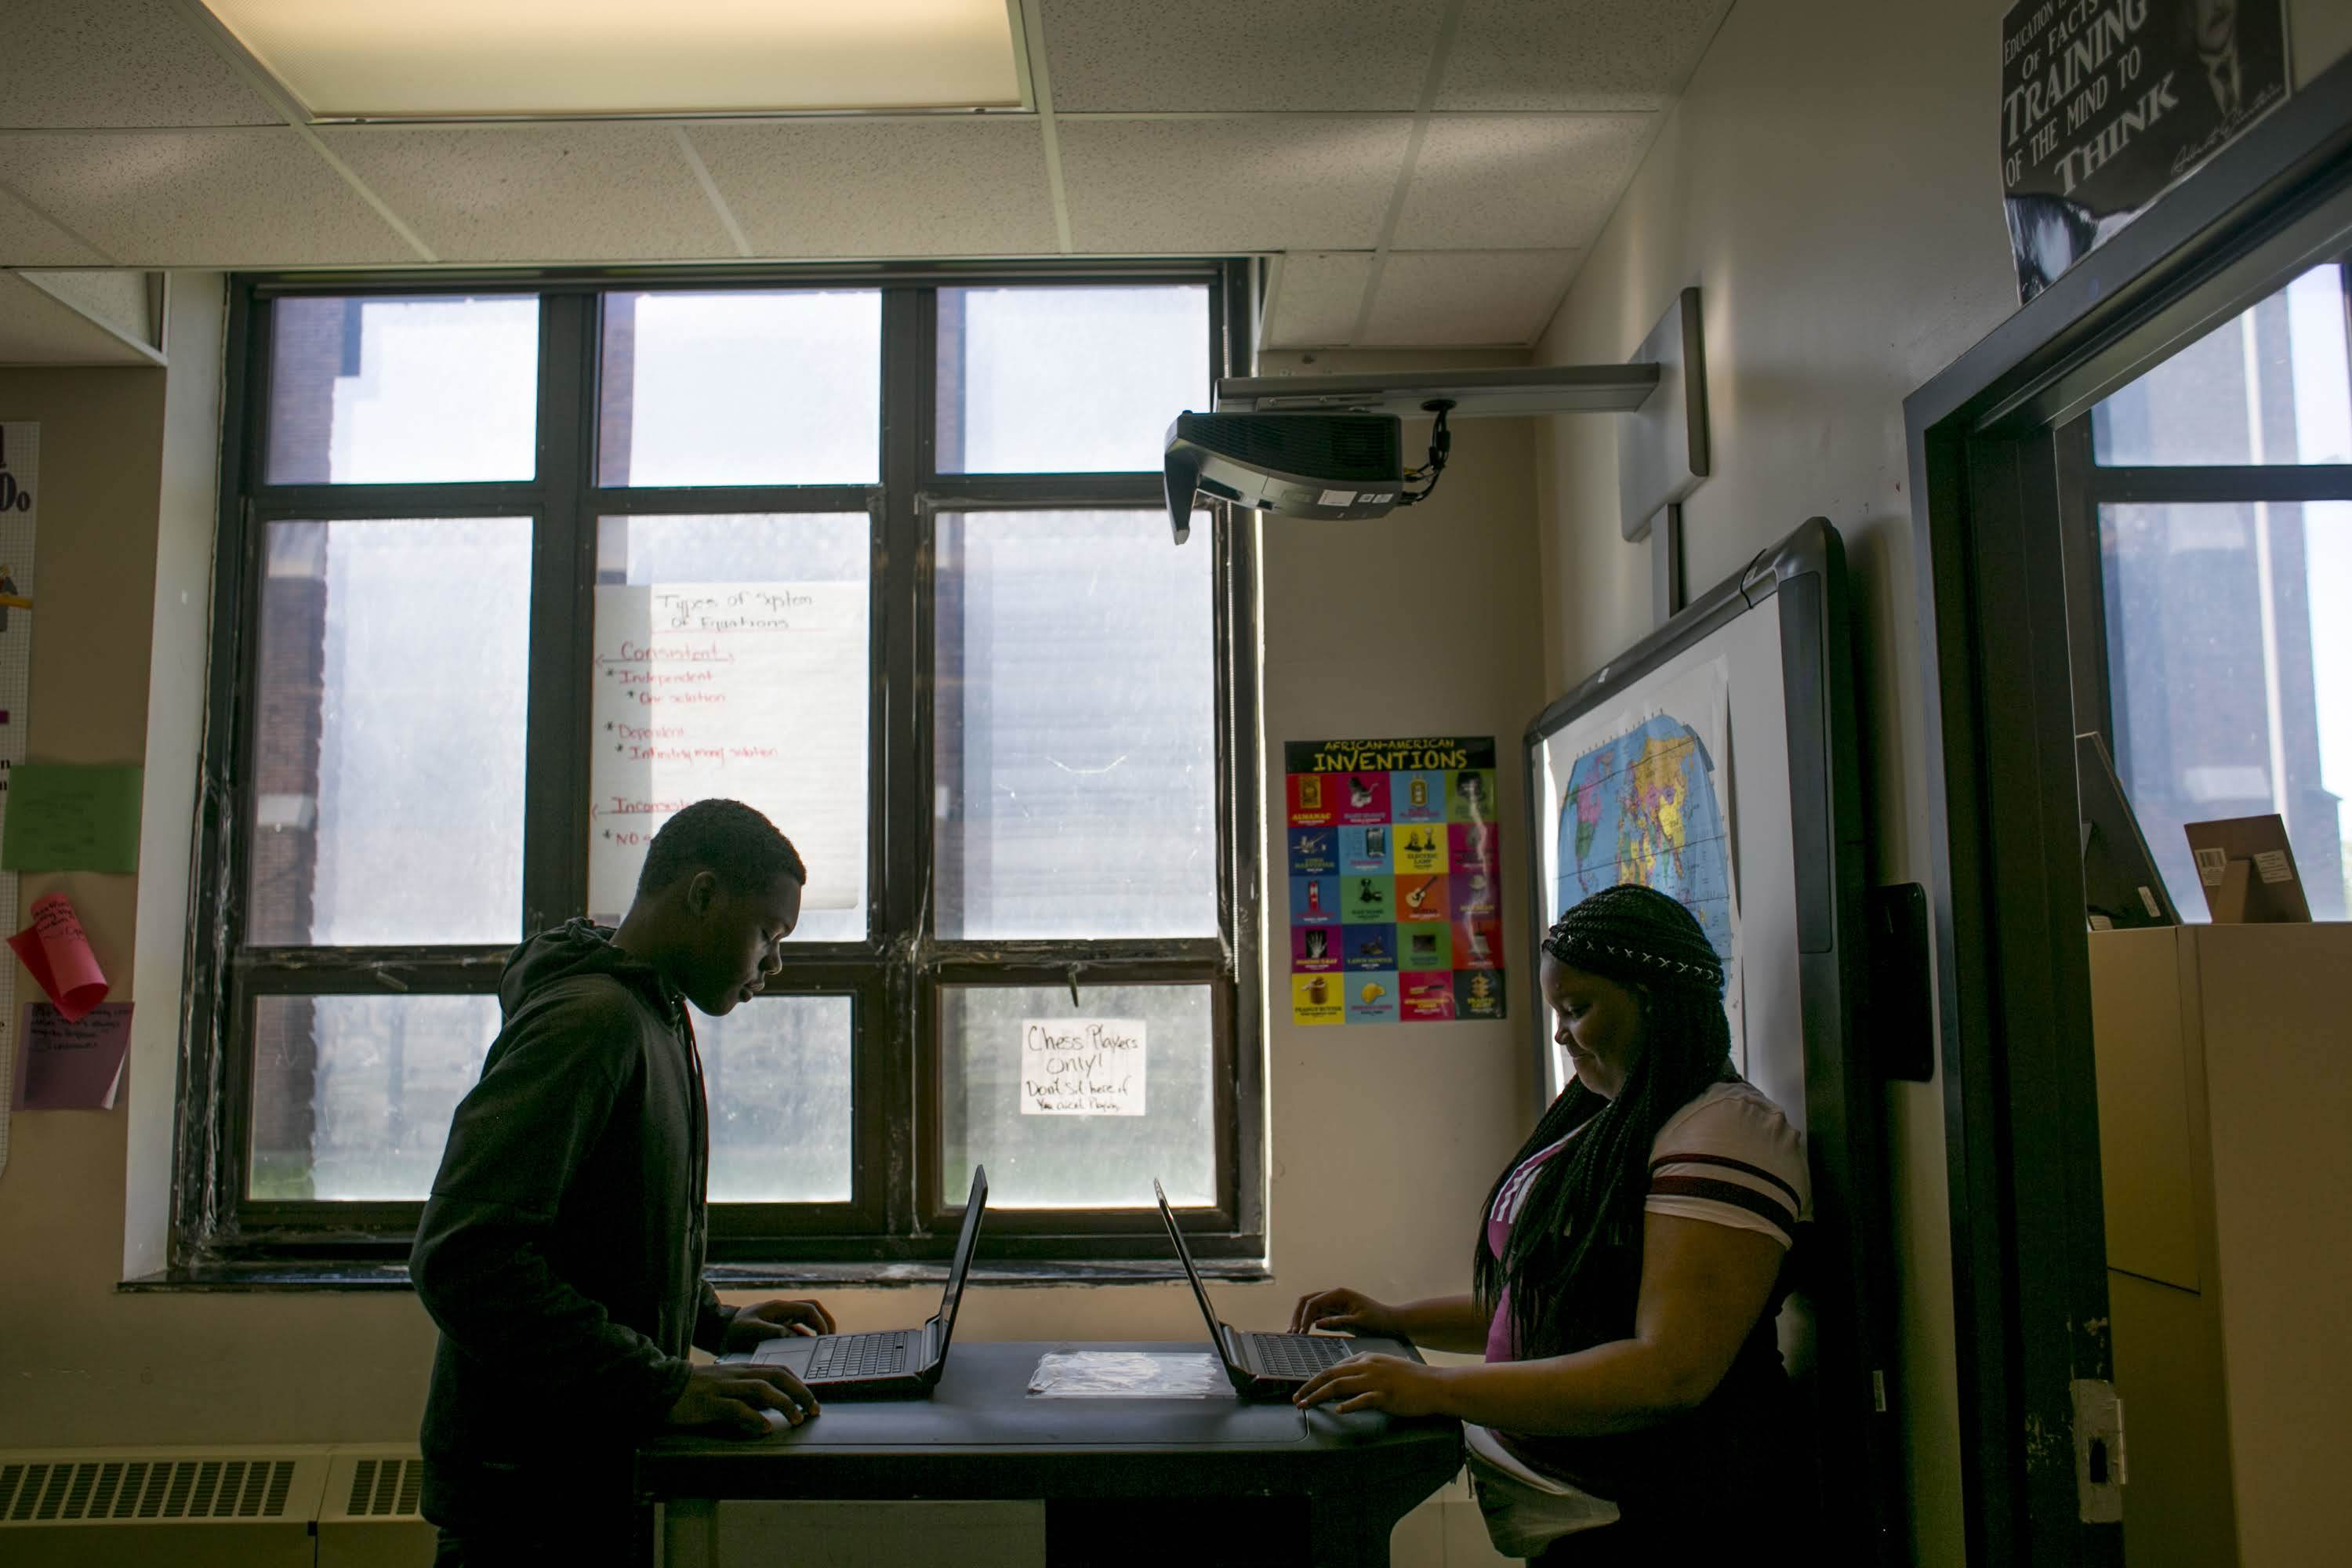 Two students work on their laptops in a classroom, partially silhouetted against a window.